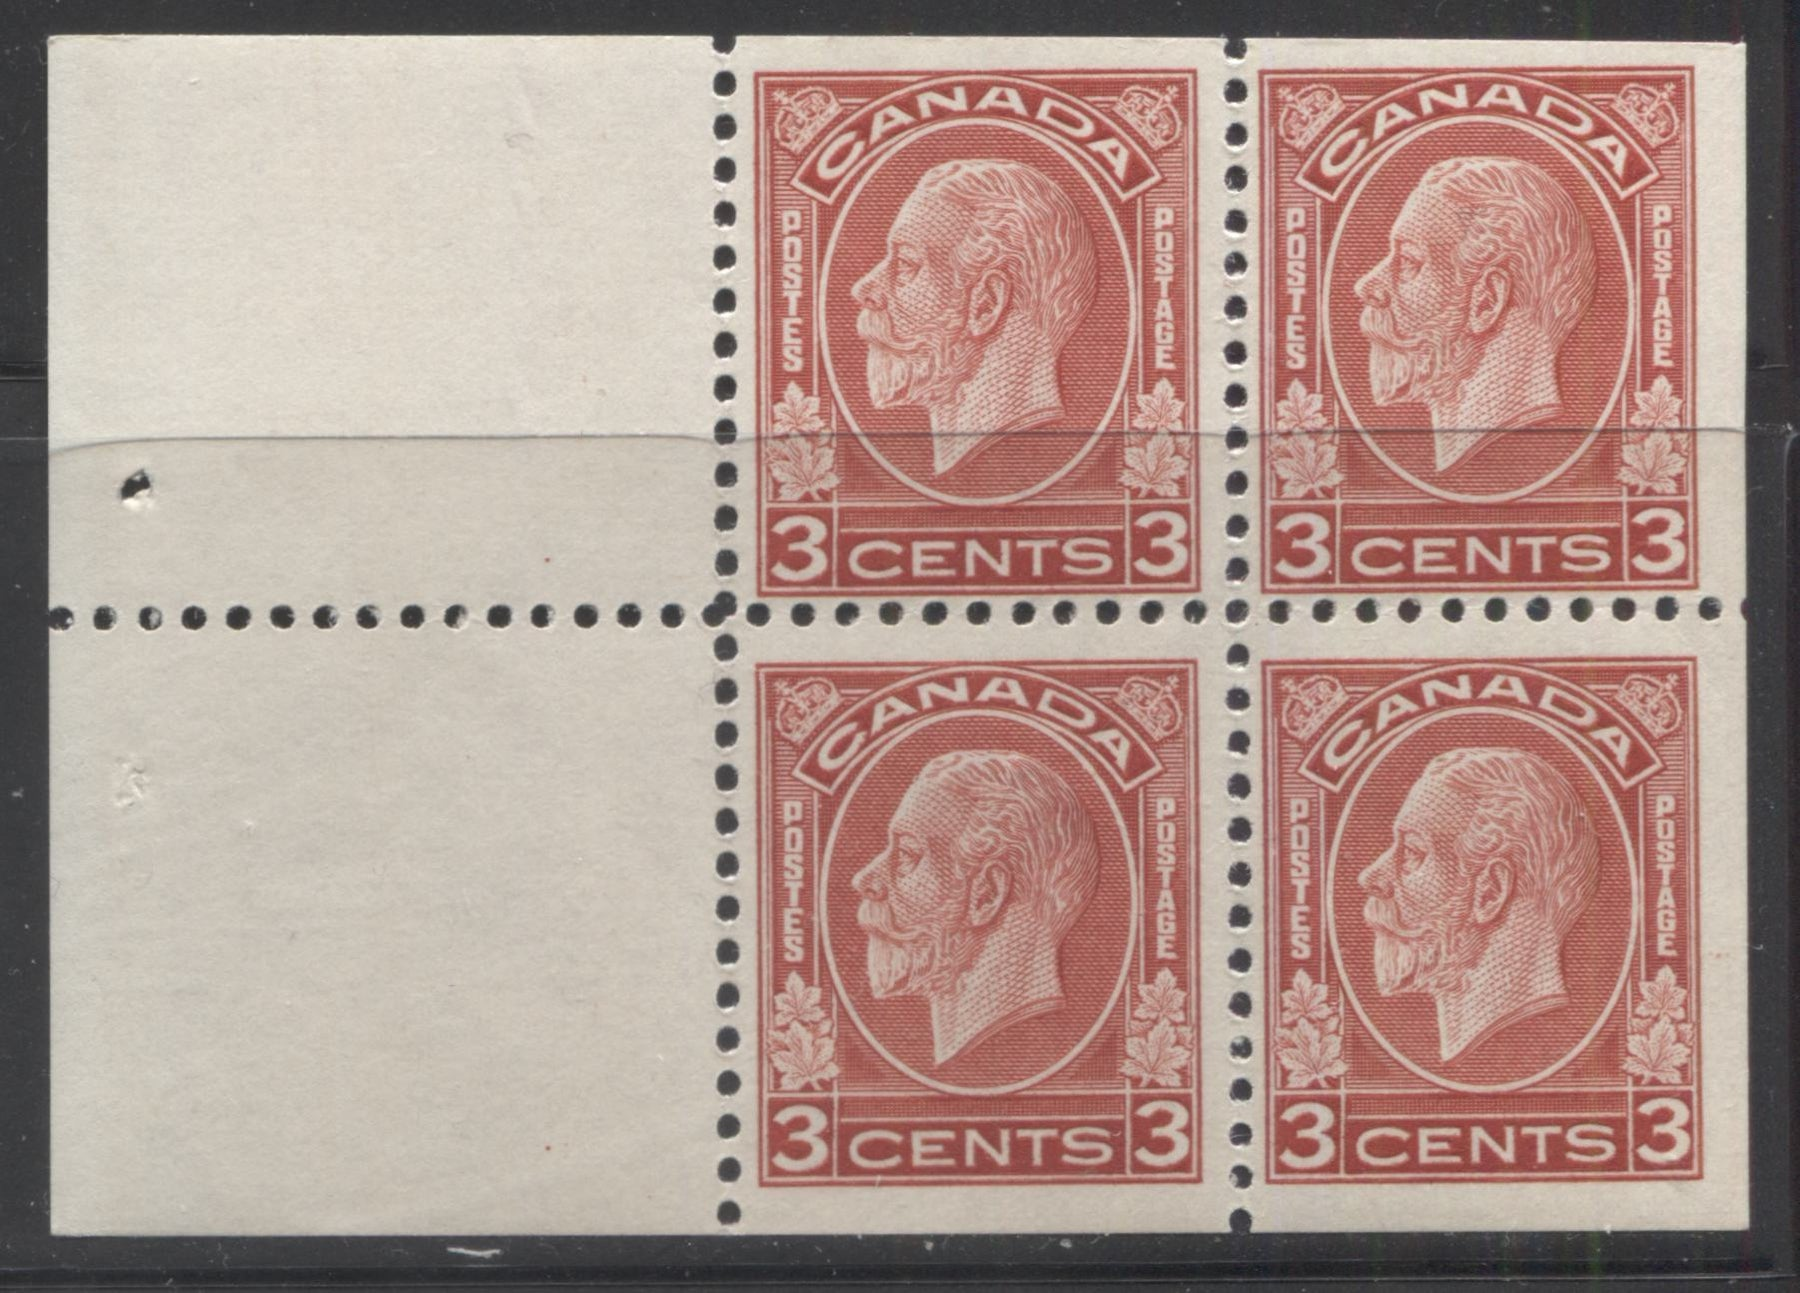 Canada #197d 3c Deep Red, King George V 1932-1935 Medallion Issue, a Fine Mint NH Booklet Pane of 4 + 2 Labels